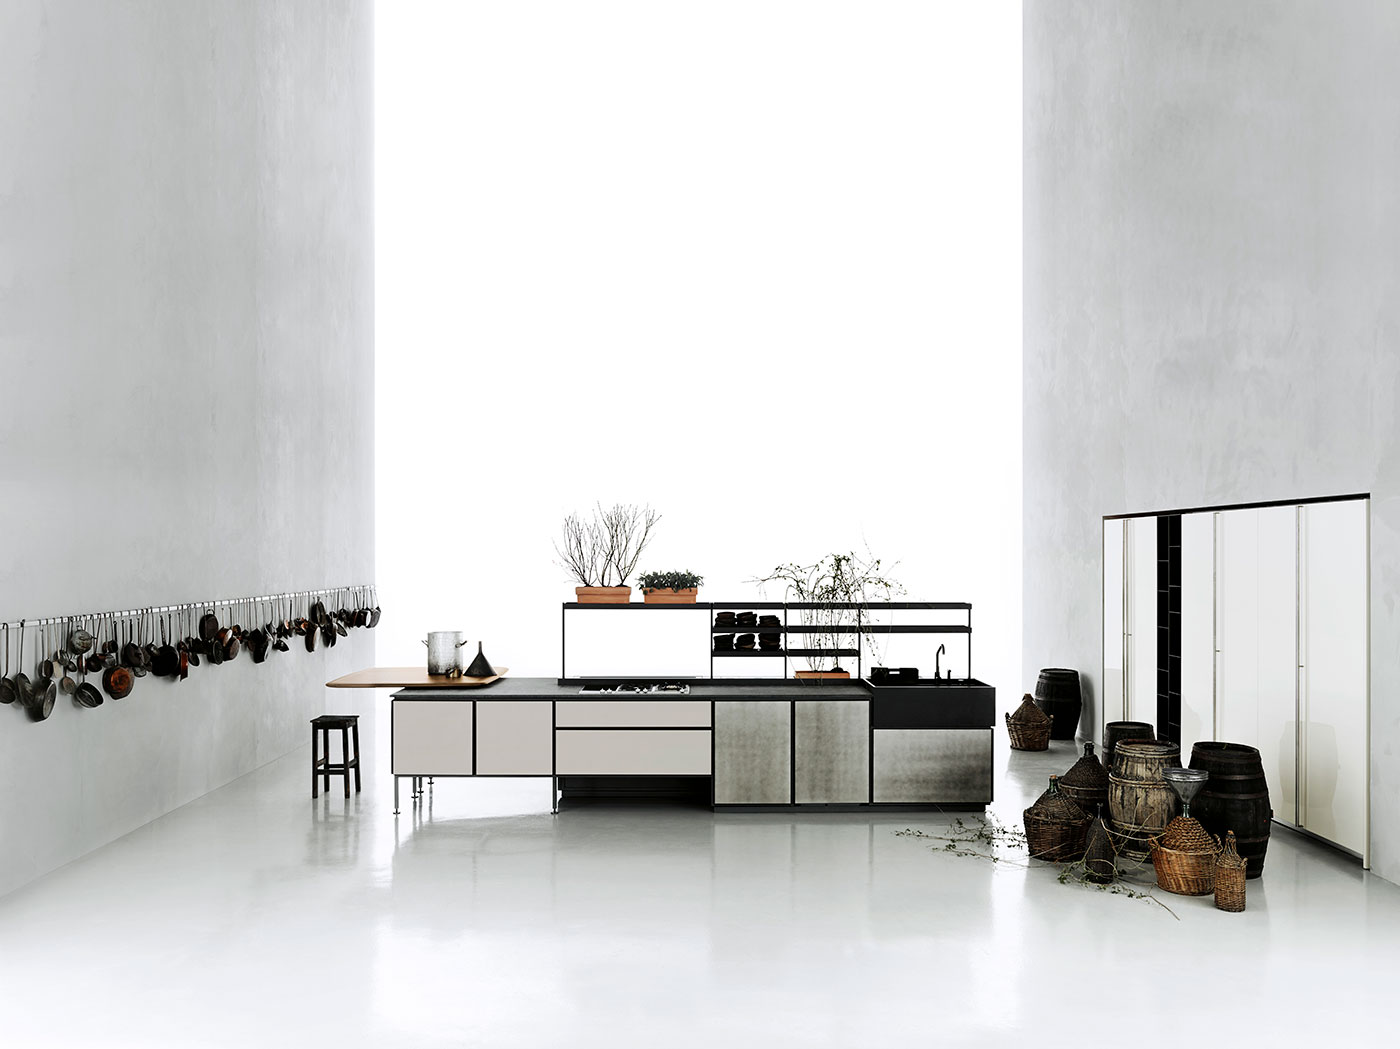 Obegi Home Boffi Salinas Kitchen and Hide By Tommasosartori High